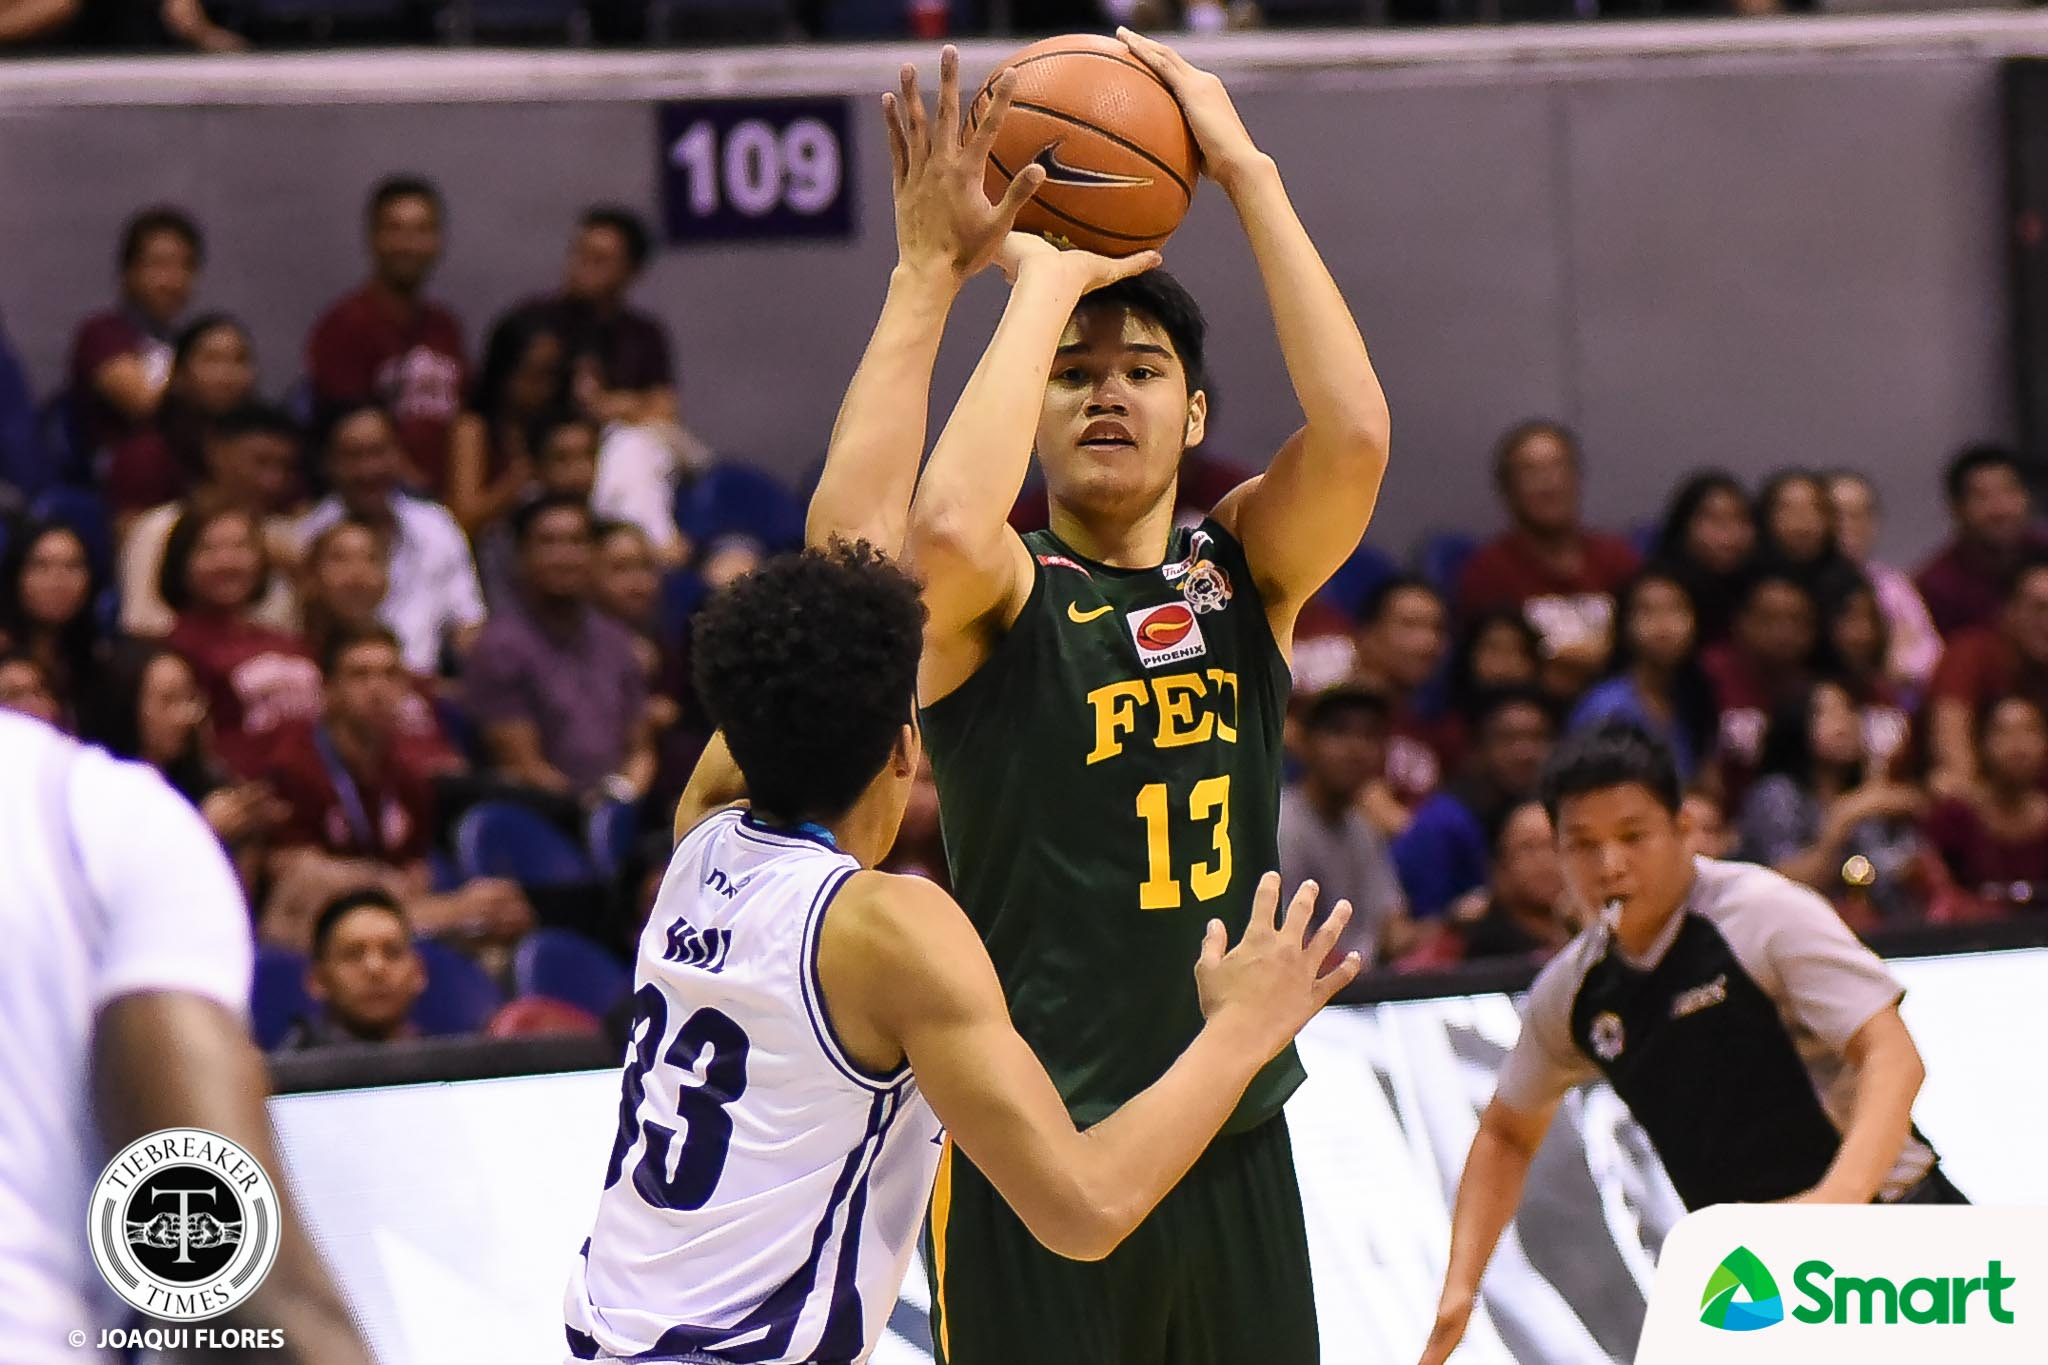 Philippine Sports News - Tiebreaker Times FEU books last playoff ticket AdU Basketball FEU News UAAP  UAAP Season 80 Men's Basketball UAAP Season 80 Robbie Manalang Richard Escoto Prince Orizu Papi Sarr Olsen Racela Franz Pumaren FEU Men's Basketball Arvin Tolentino Adamson Men's Basketball